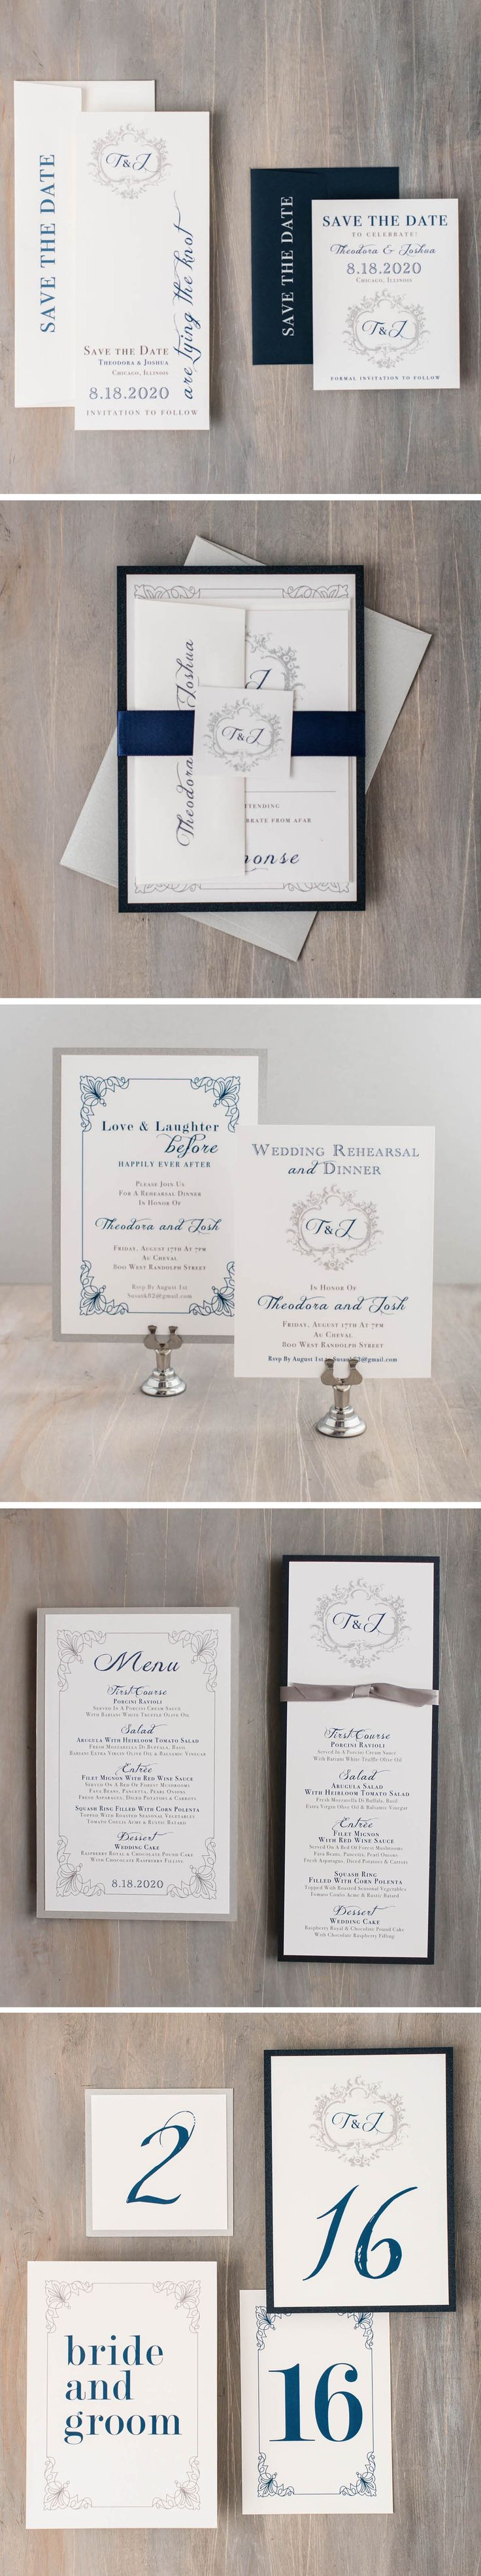 From wedding invitations to save the dates and ceremony programs, set the tone for your wedding day with elegant navy script stationery by Beacon Lane. Explore our entire collection of save the dates, invites, and day of paper goods at www.beaconln.com